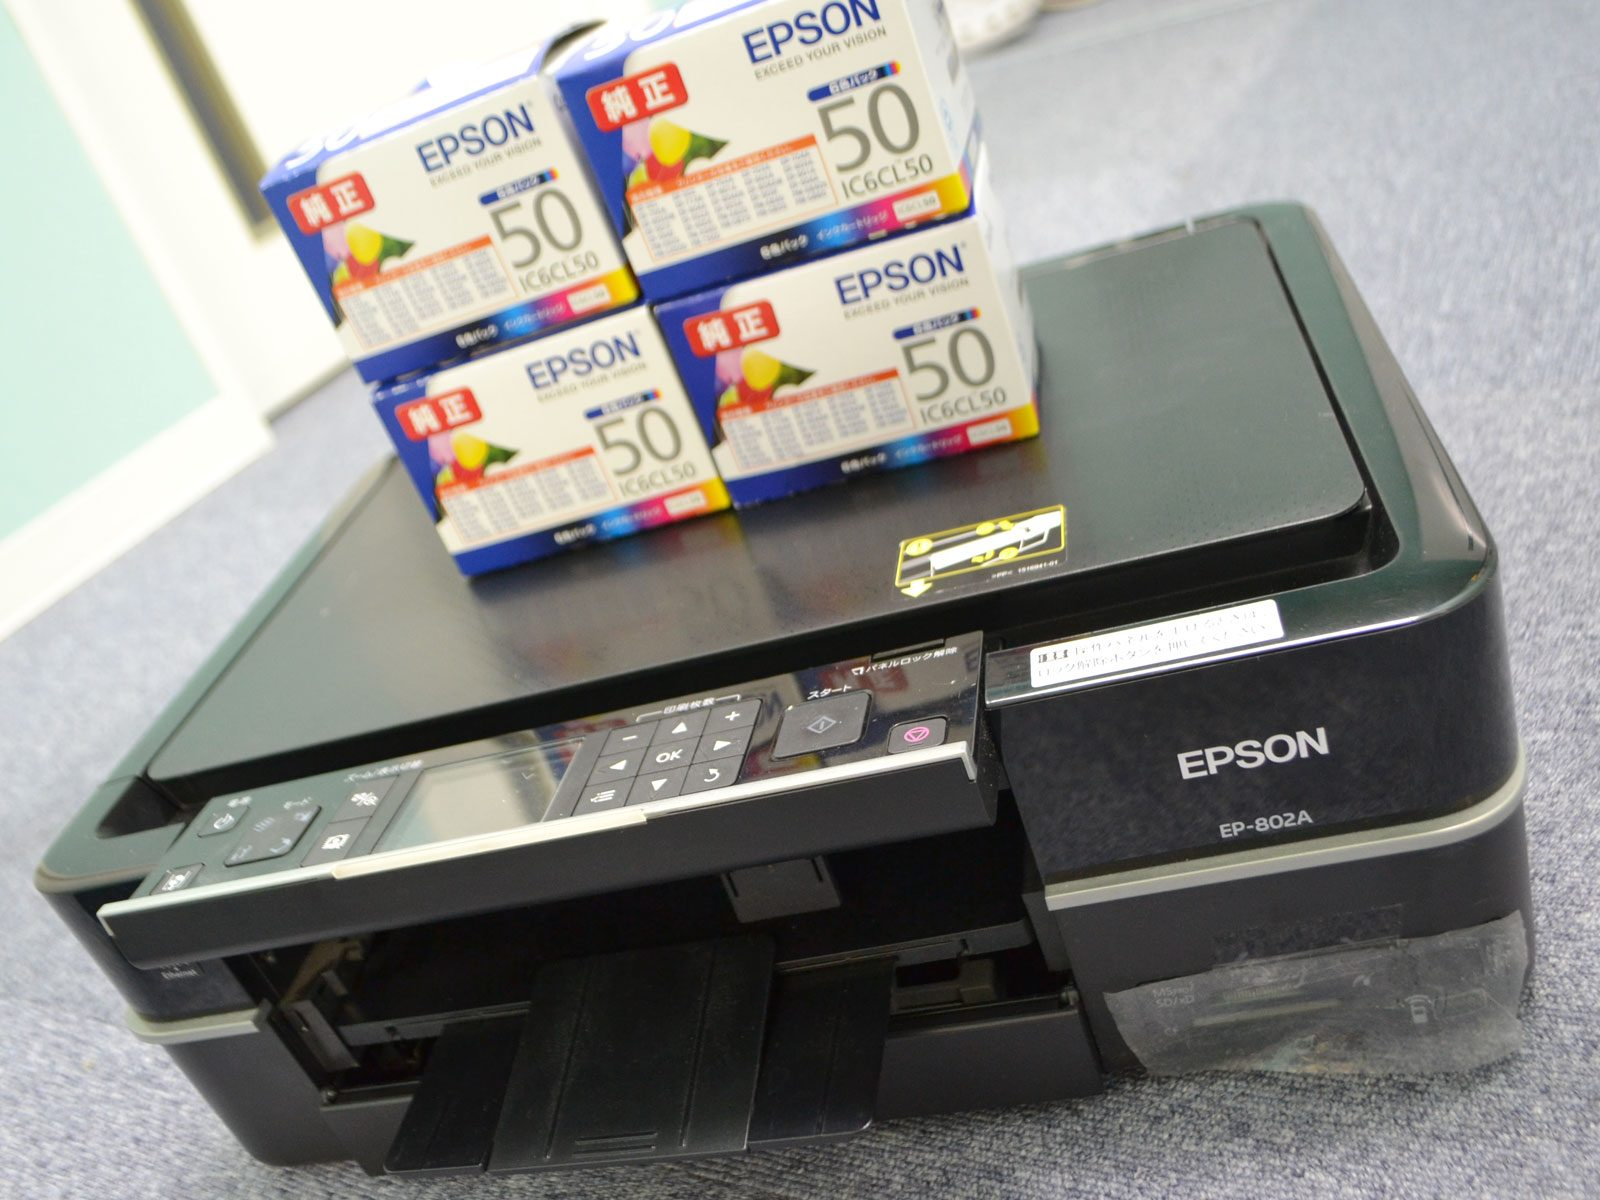 EPSON-EP802Aプリンター